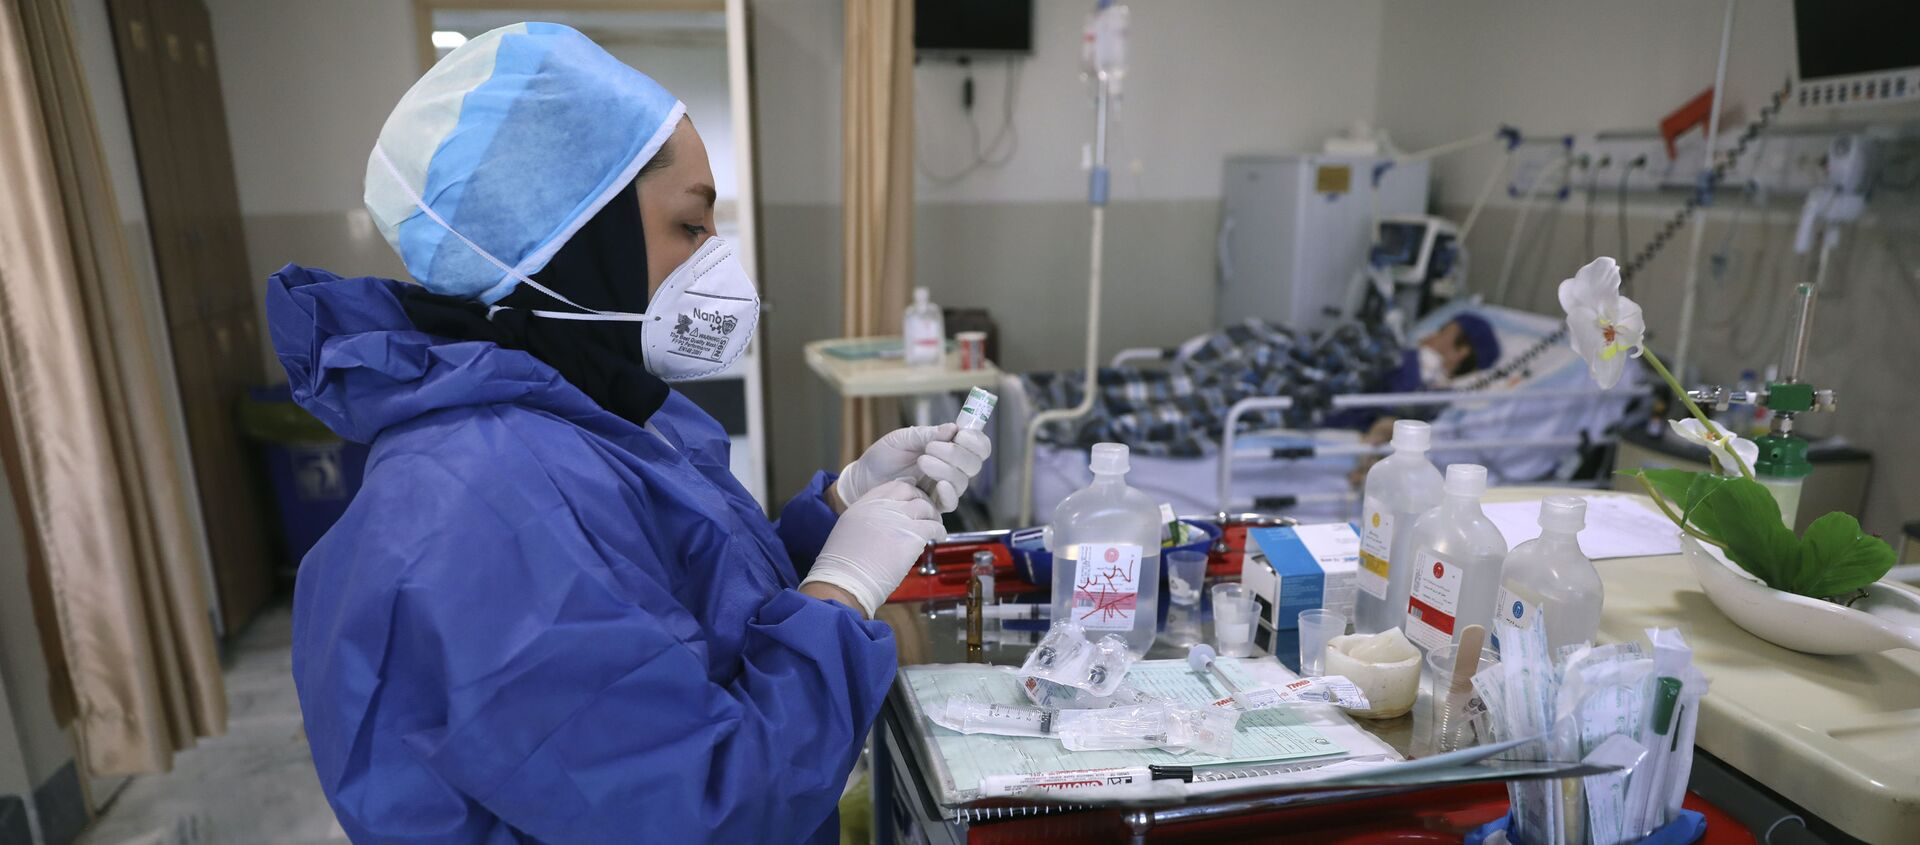 In this Tuesday, June 16, 2020, photo, a nurse prepares medicines for COVID-19 patients at the Shohadaye Tajrish Hospital in Tehran, Iran. After months of fighting the coronavirus, Iran only just saw its highest single-day spike in reported cases after Eid al-Fitr, the holiday that celebrates the end of Ramadan.  - Sputnik International, 1920